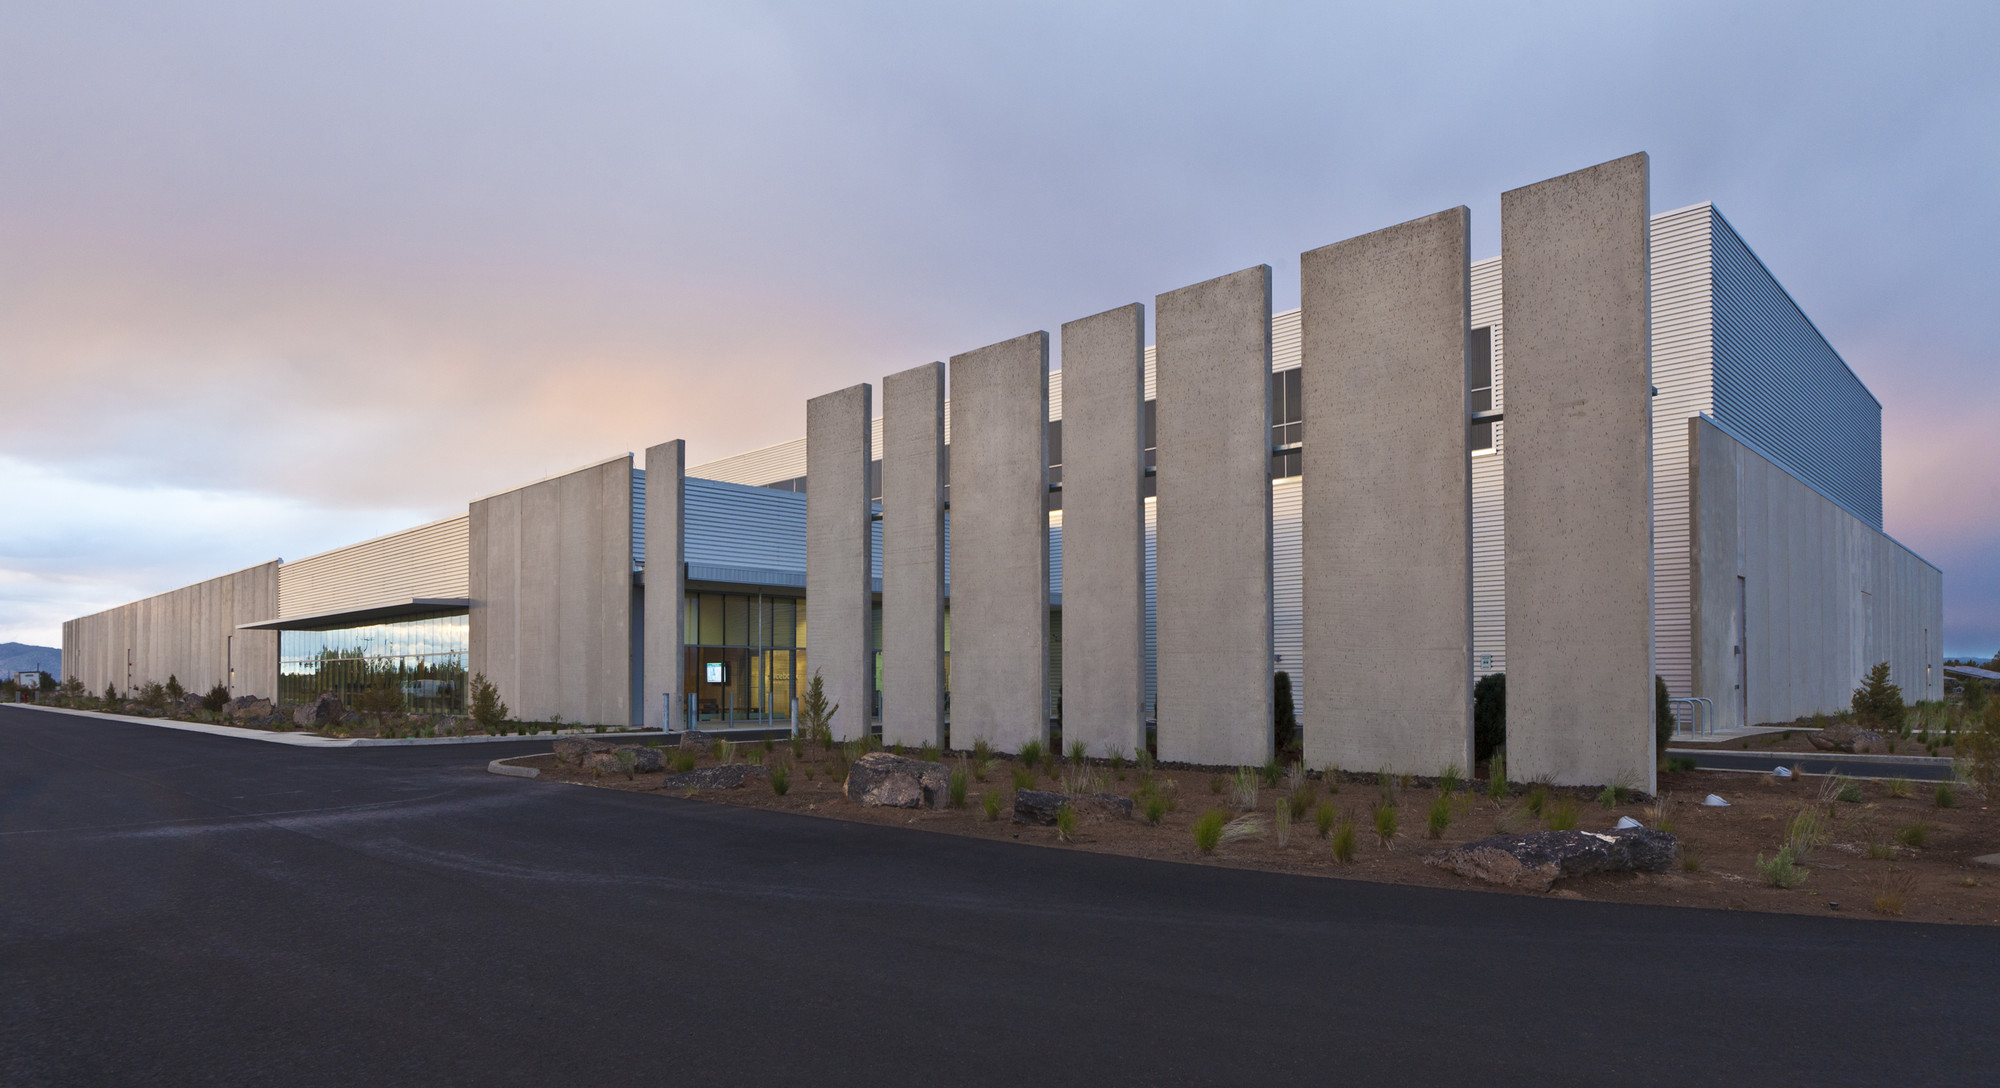 Facebook Prineville Data Center / Sheehan Partners, © Jonnu Singleton